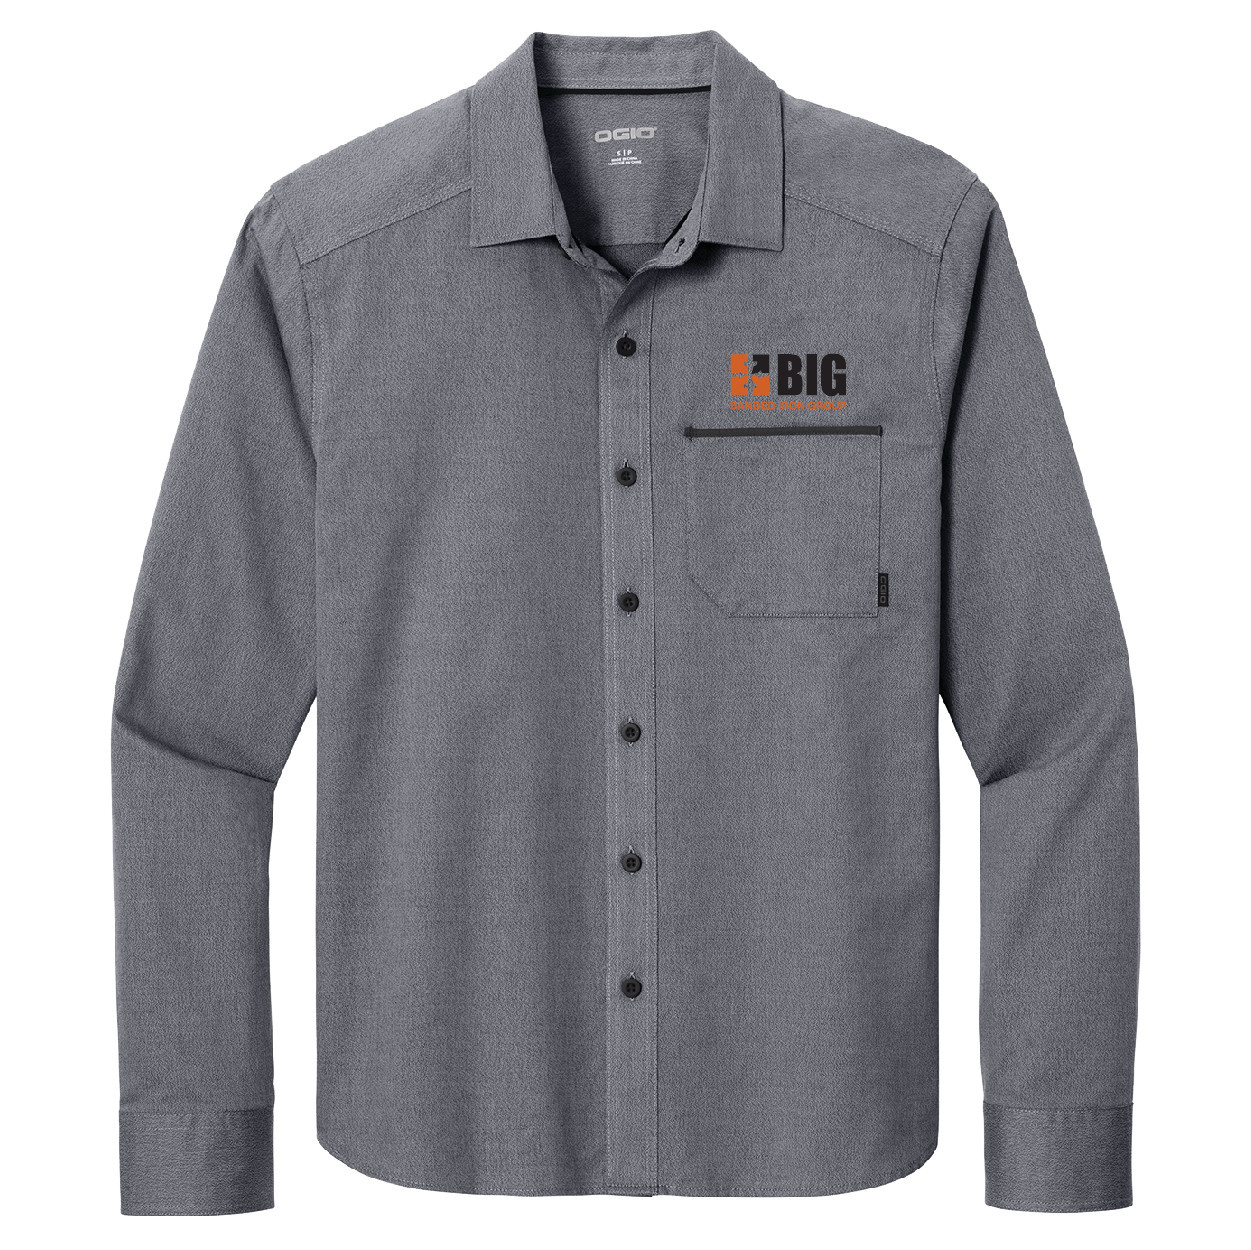 Ogio Ogio Urban Shirt (Gear Grey)